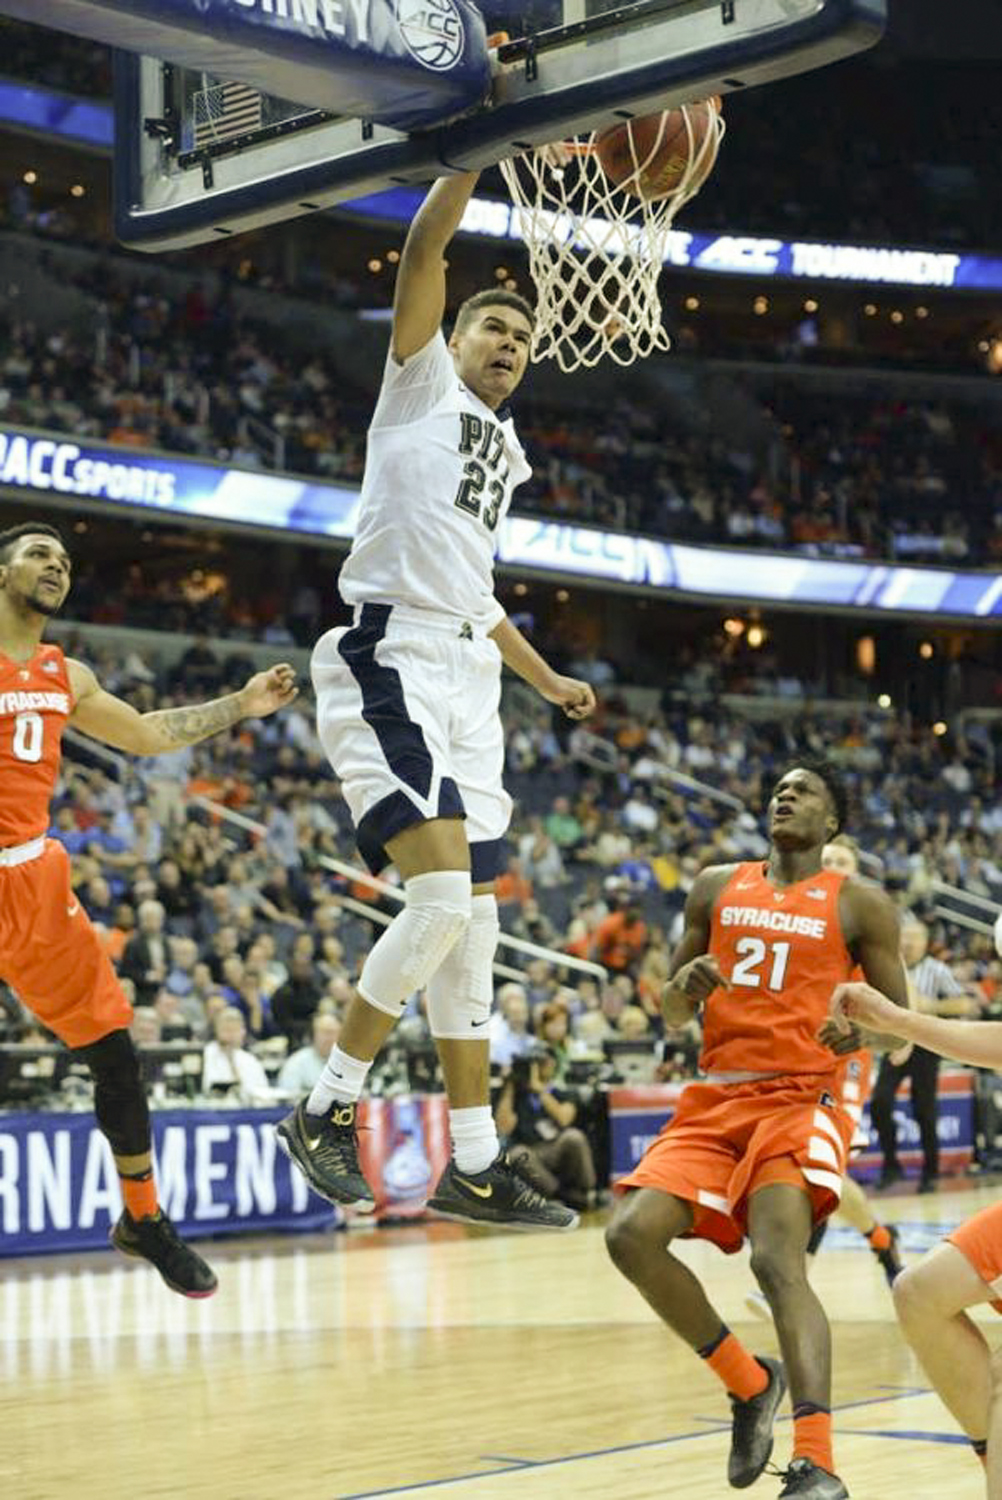 Ex-Panther and projected first-round 2019 NBA Draft pick Cameron Johnson, pictured here against Syracuse in 2016, led No. 1 UNC in scoring with 16.9 points per game during the regular season.